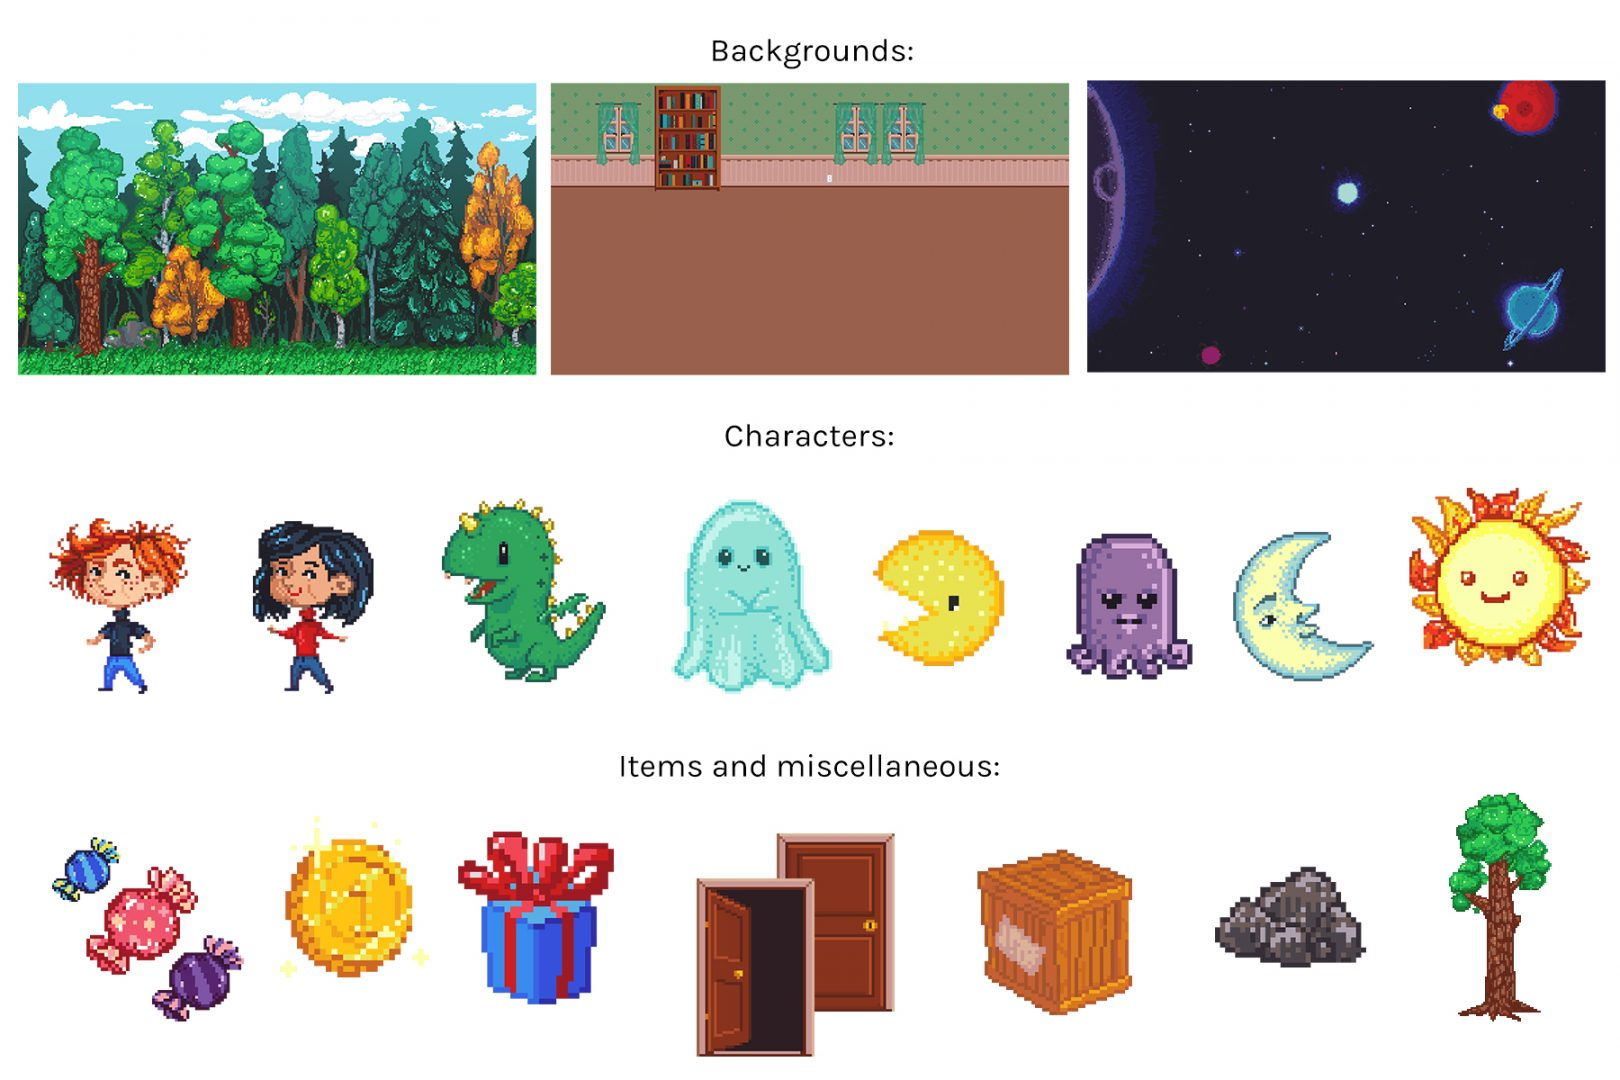 Preview of the pixel art asset pack. Includes three backgrounds, 8 characters, and 8 game items and miscellaneous props.